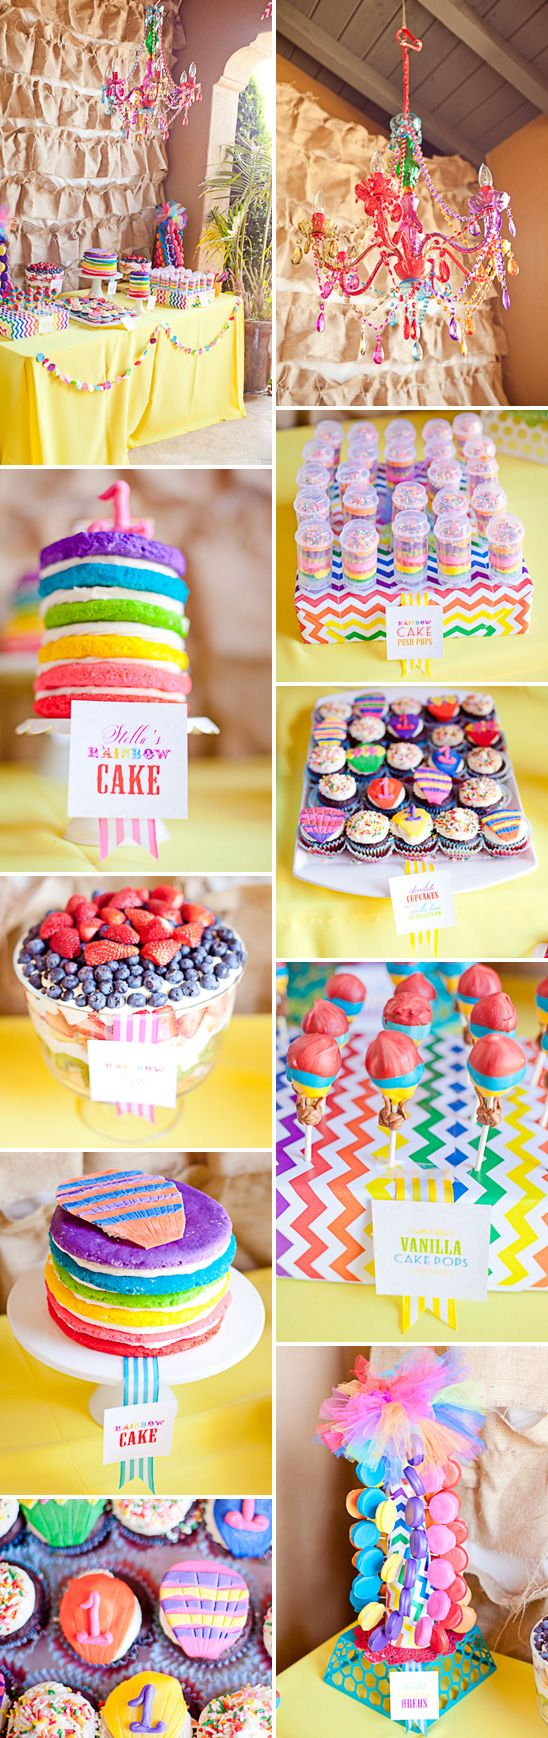 Looking for lots of color! I love the multi-color chevron pattern in this theme